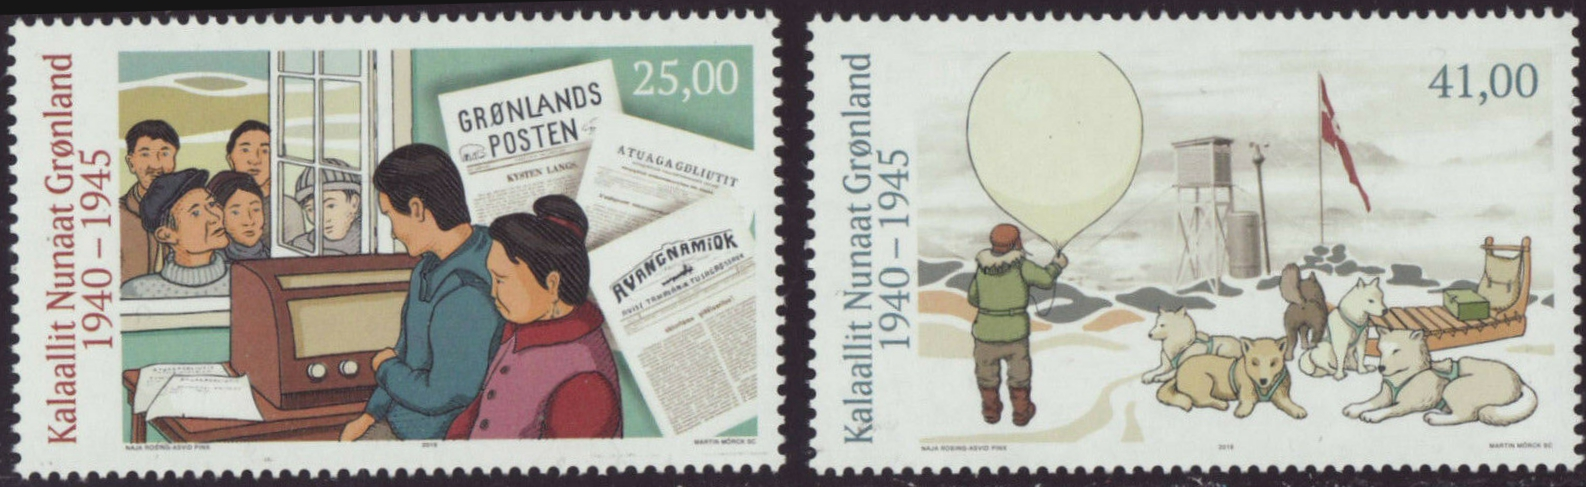 Greenland - Greenland in the Second World War, Part IV: Communications, Weather Stations (January 21, 2019)